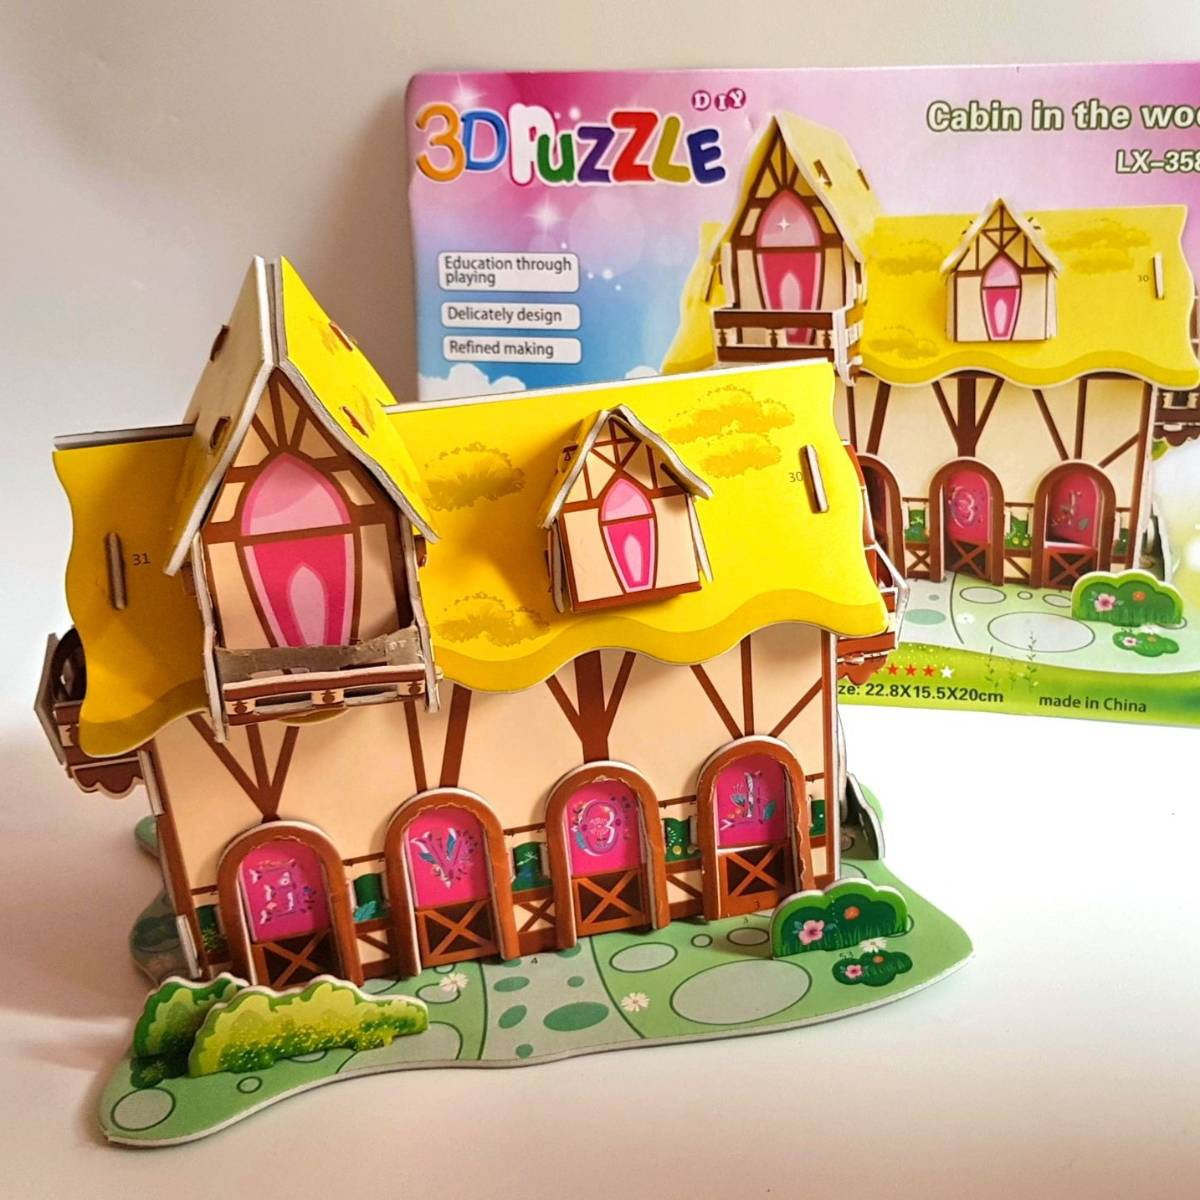 Mainan 3d Puzzle - Cabin In The Woods1